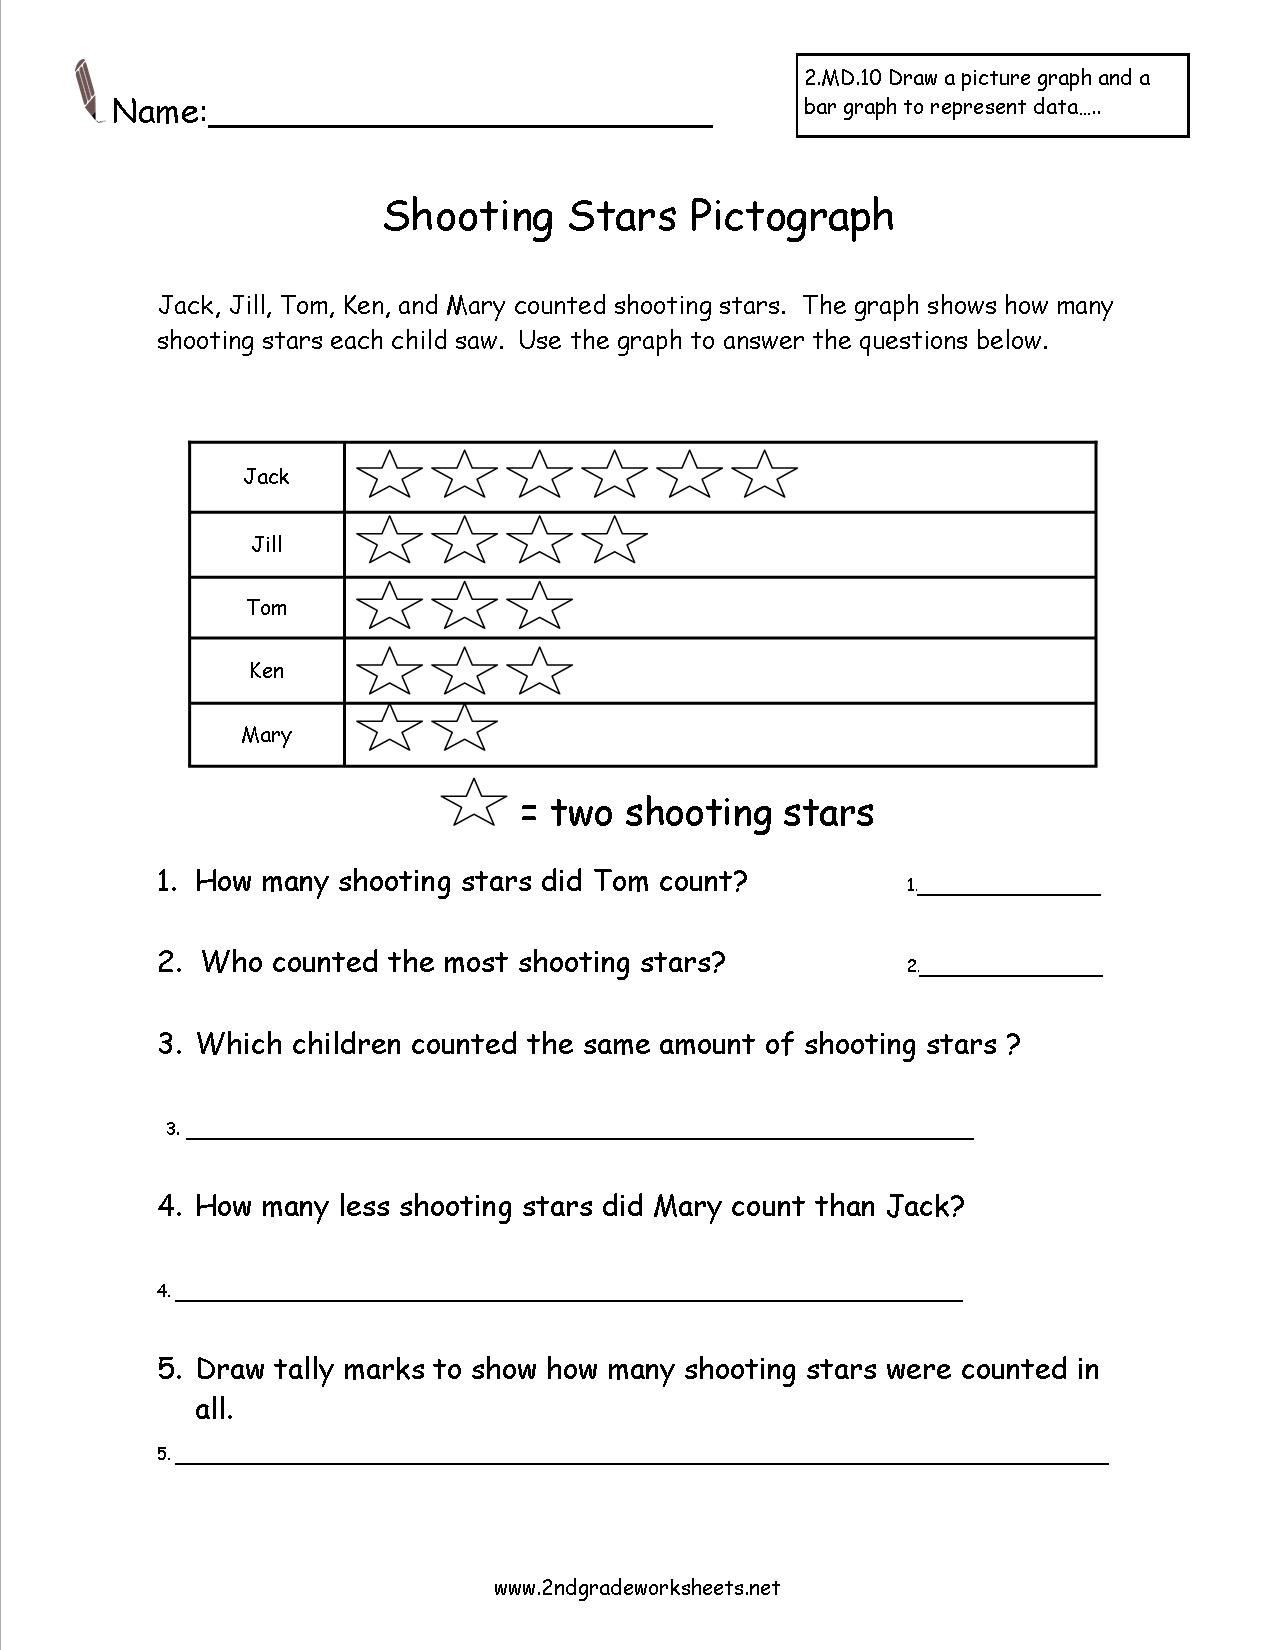 Second Grade Phonics Worksheets Shooting Stars Pictograph Worksheet Phonics Worksheets